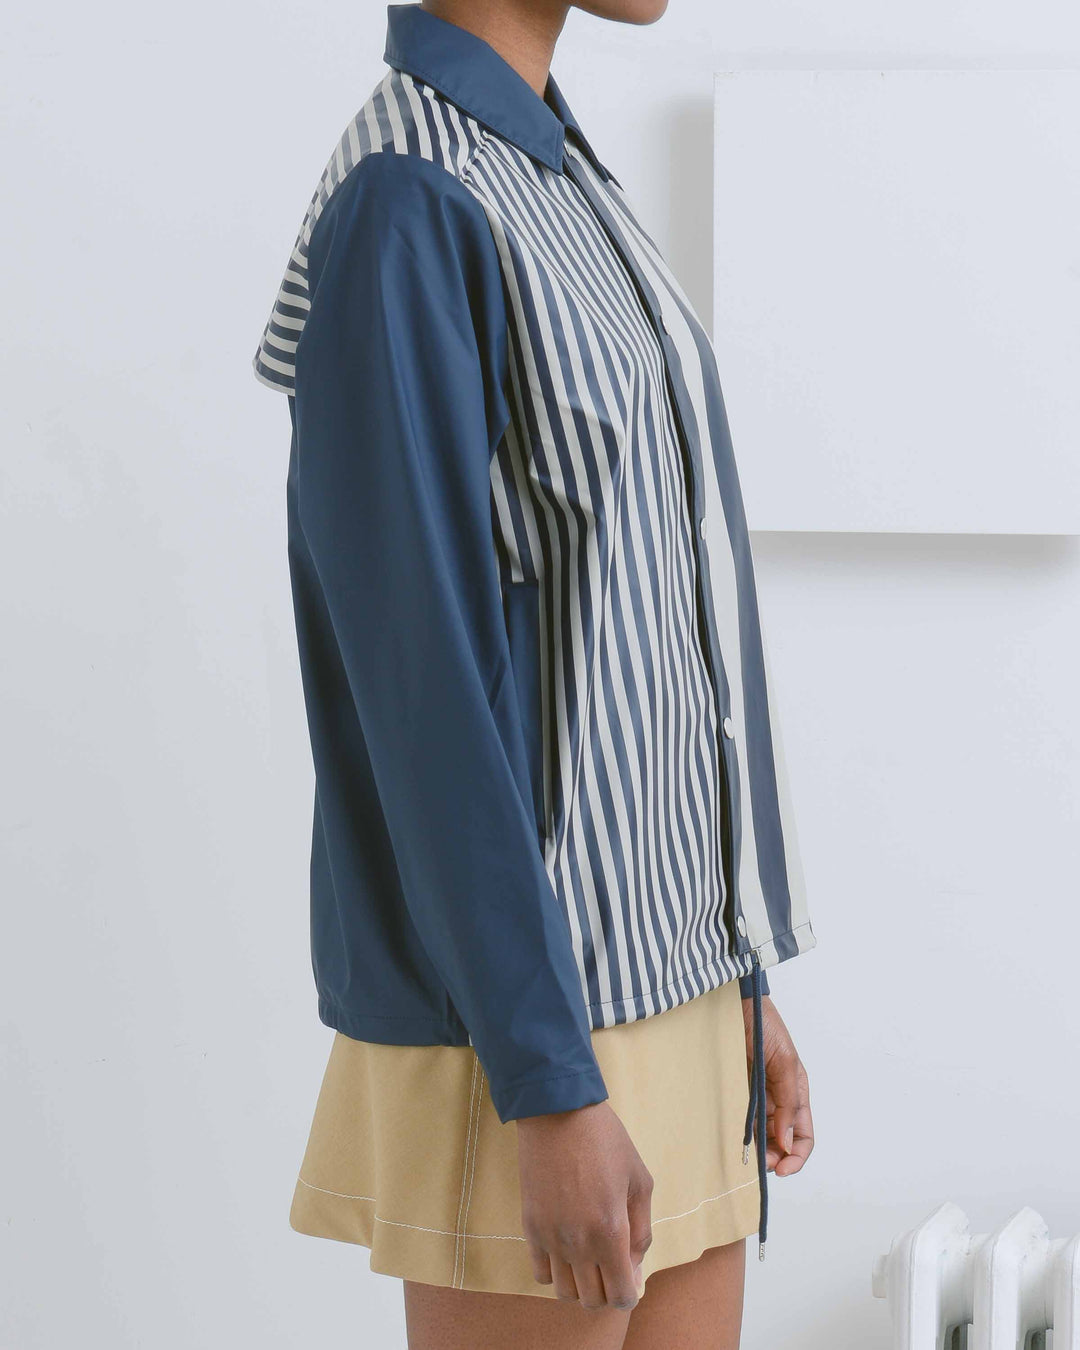 Distorted Stripes Coach Jacket